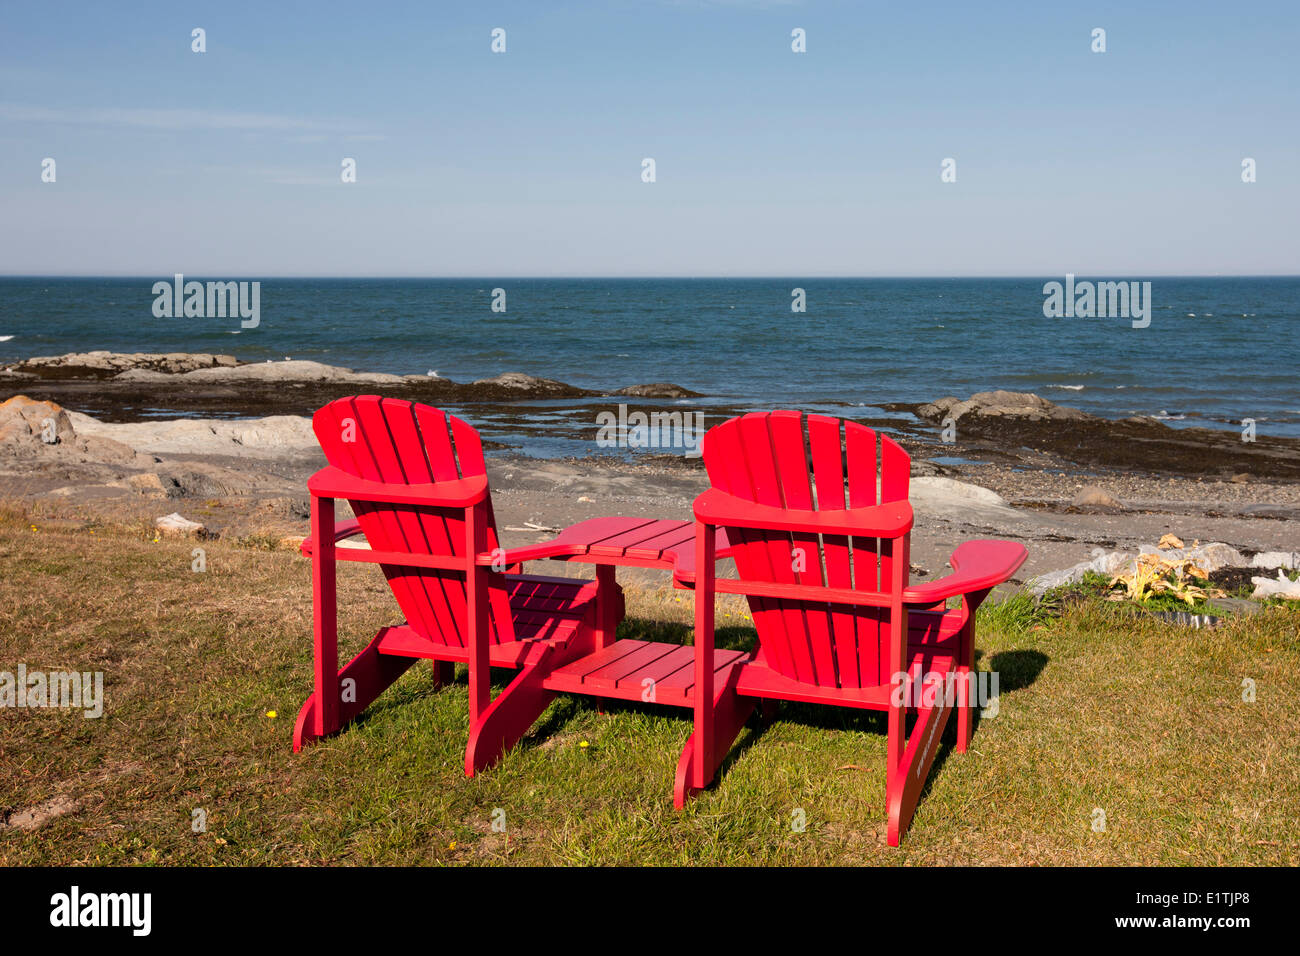 Lawn chairs, Pointe-au-Père, Quebec, Canada - Stock Image